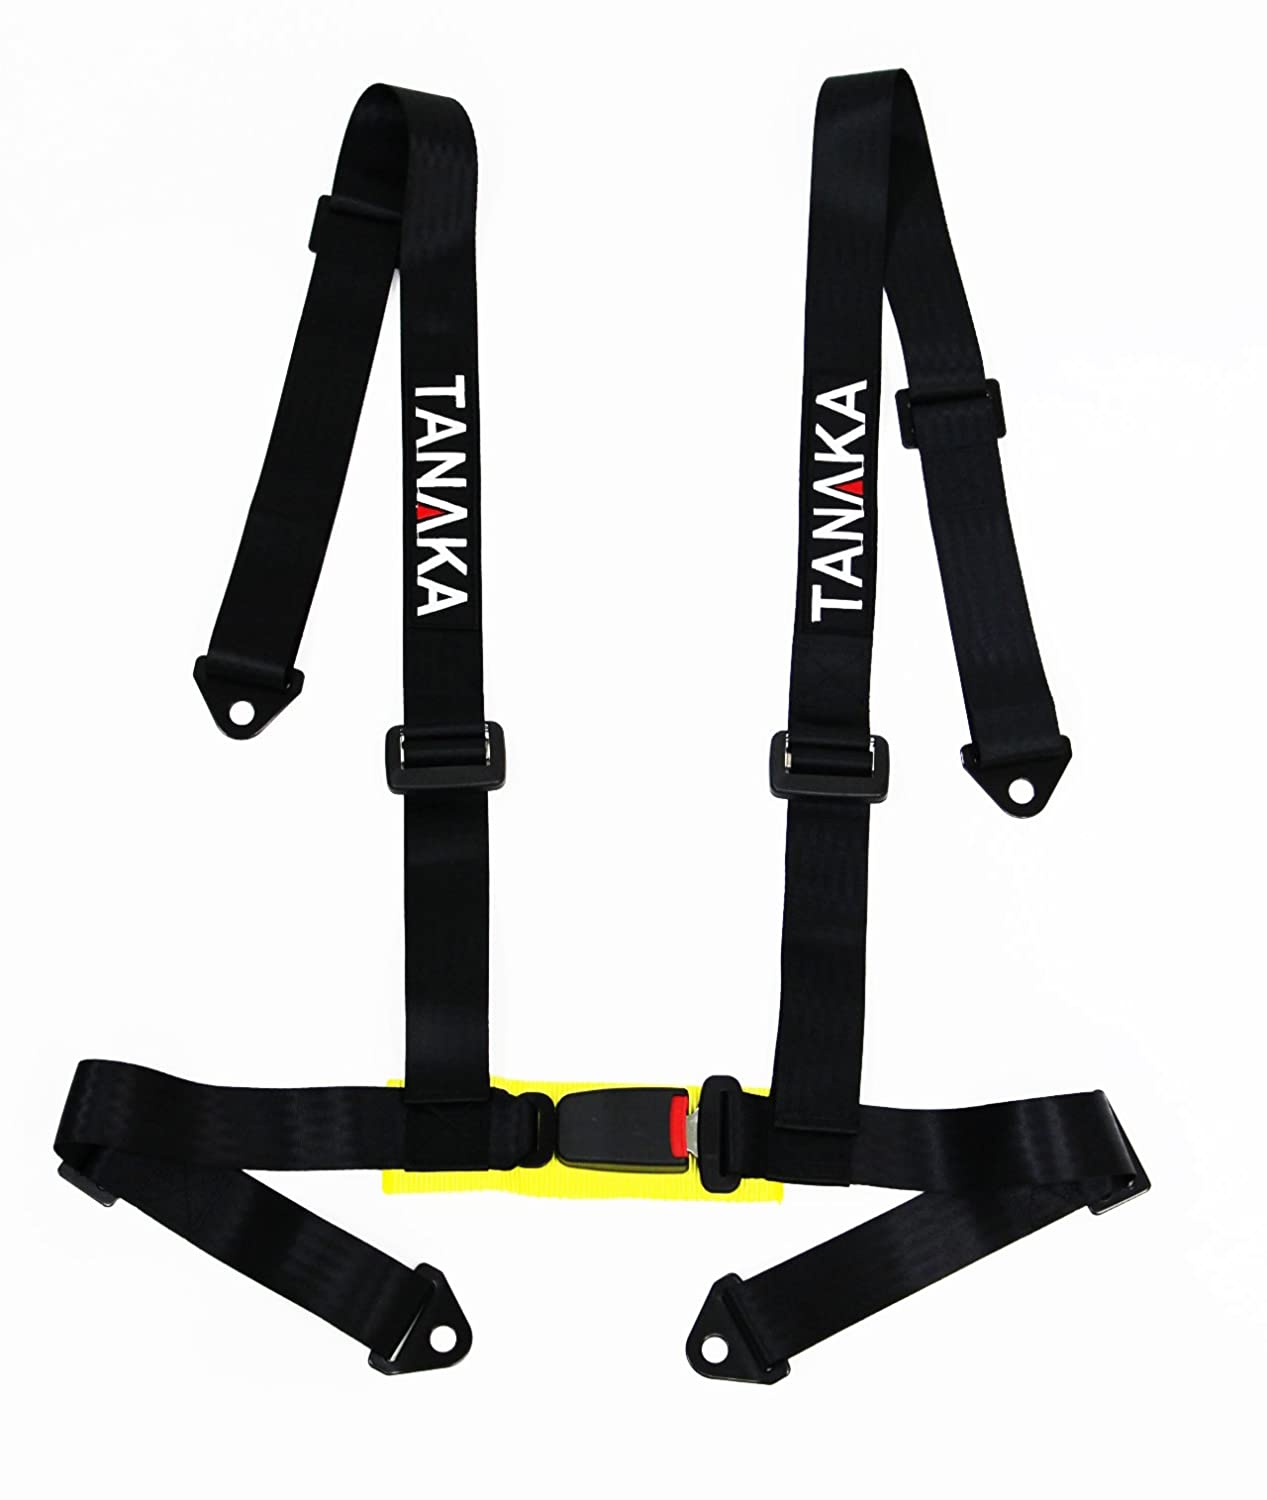 Amazon.com: Tanaka 4-point Buckle Sports Harness Seat Belt One Set